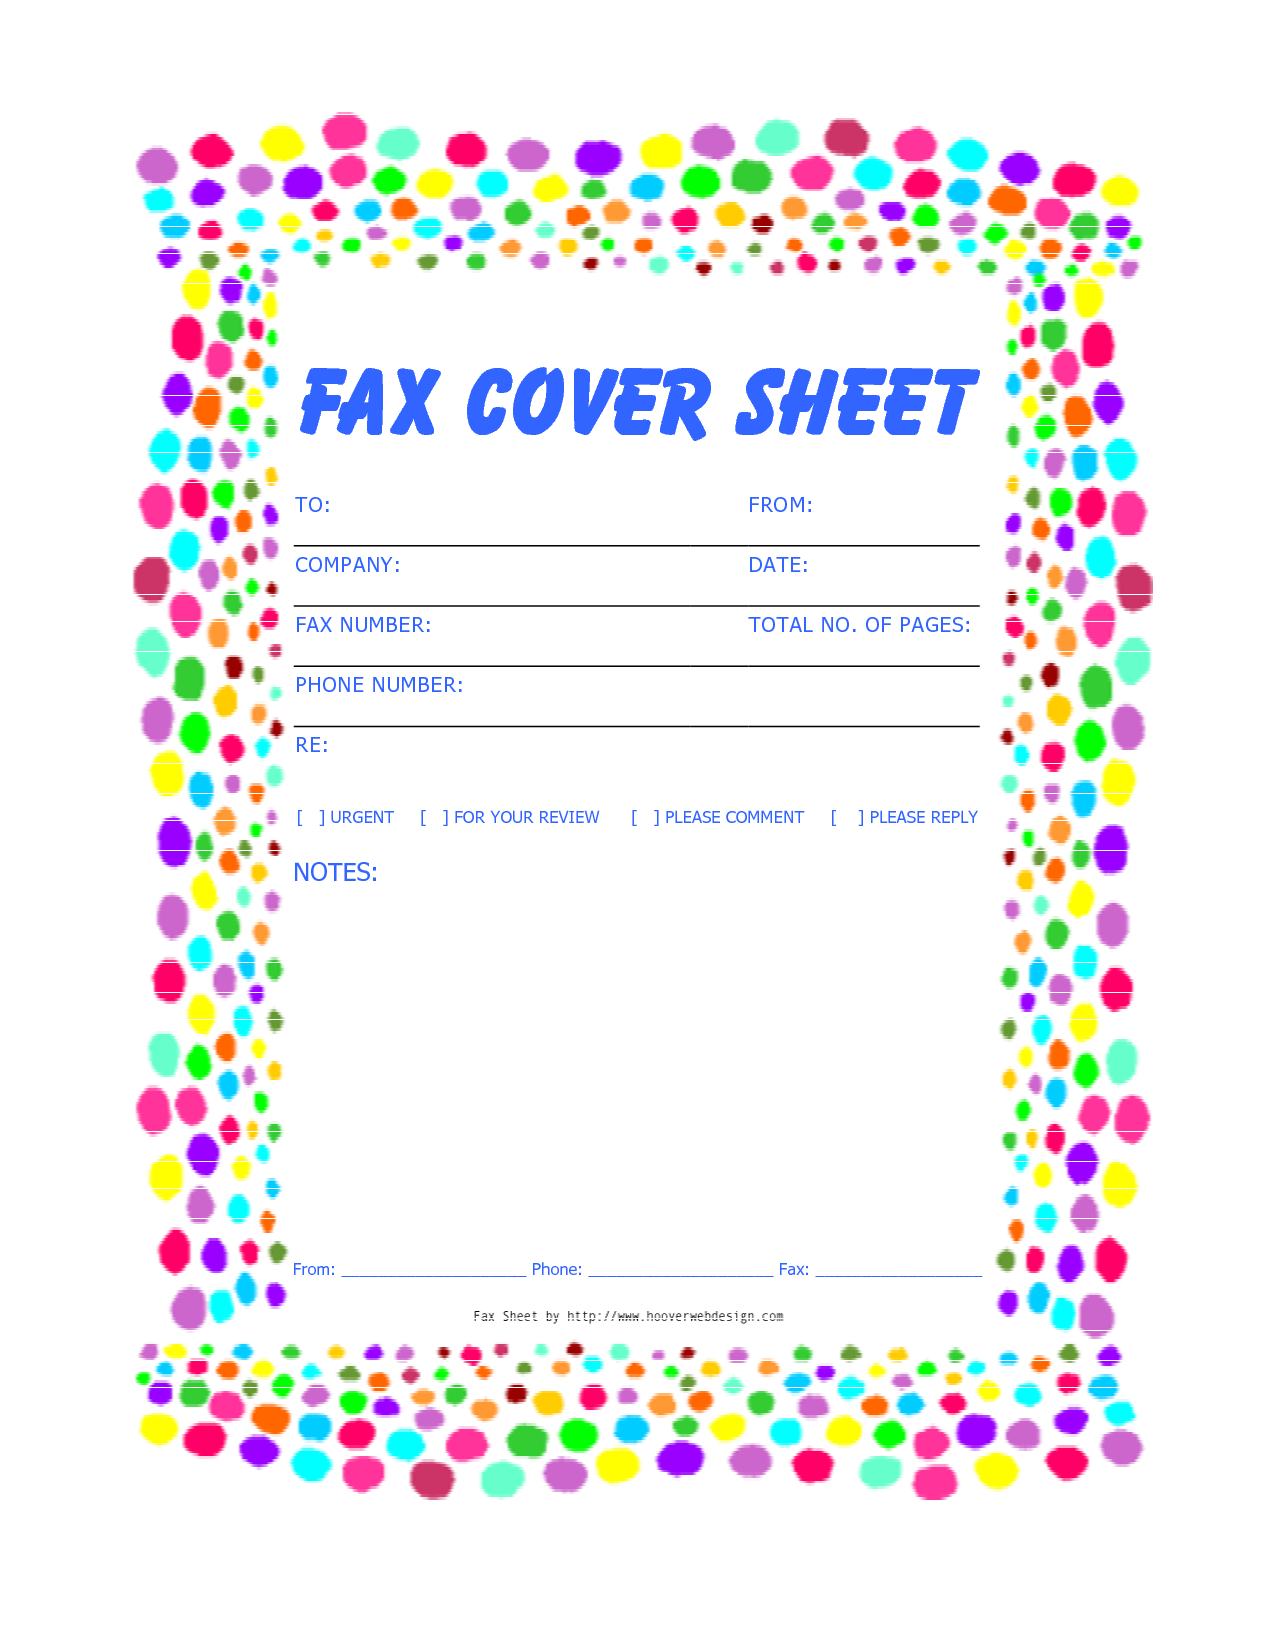 Free Printable Fax Cover Sheets | Free Printable Fax Cover Sheets Templates  Free Fax Cover Sheet Template Word